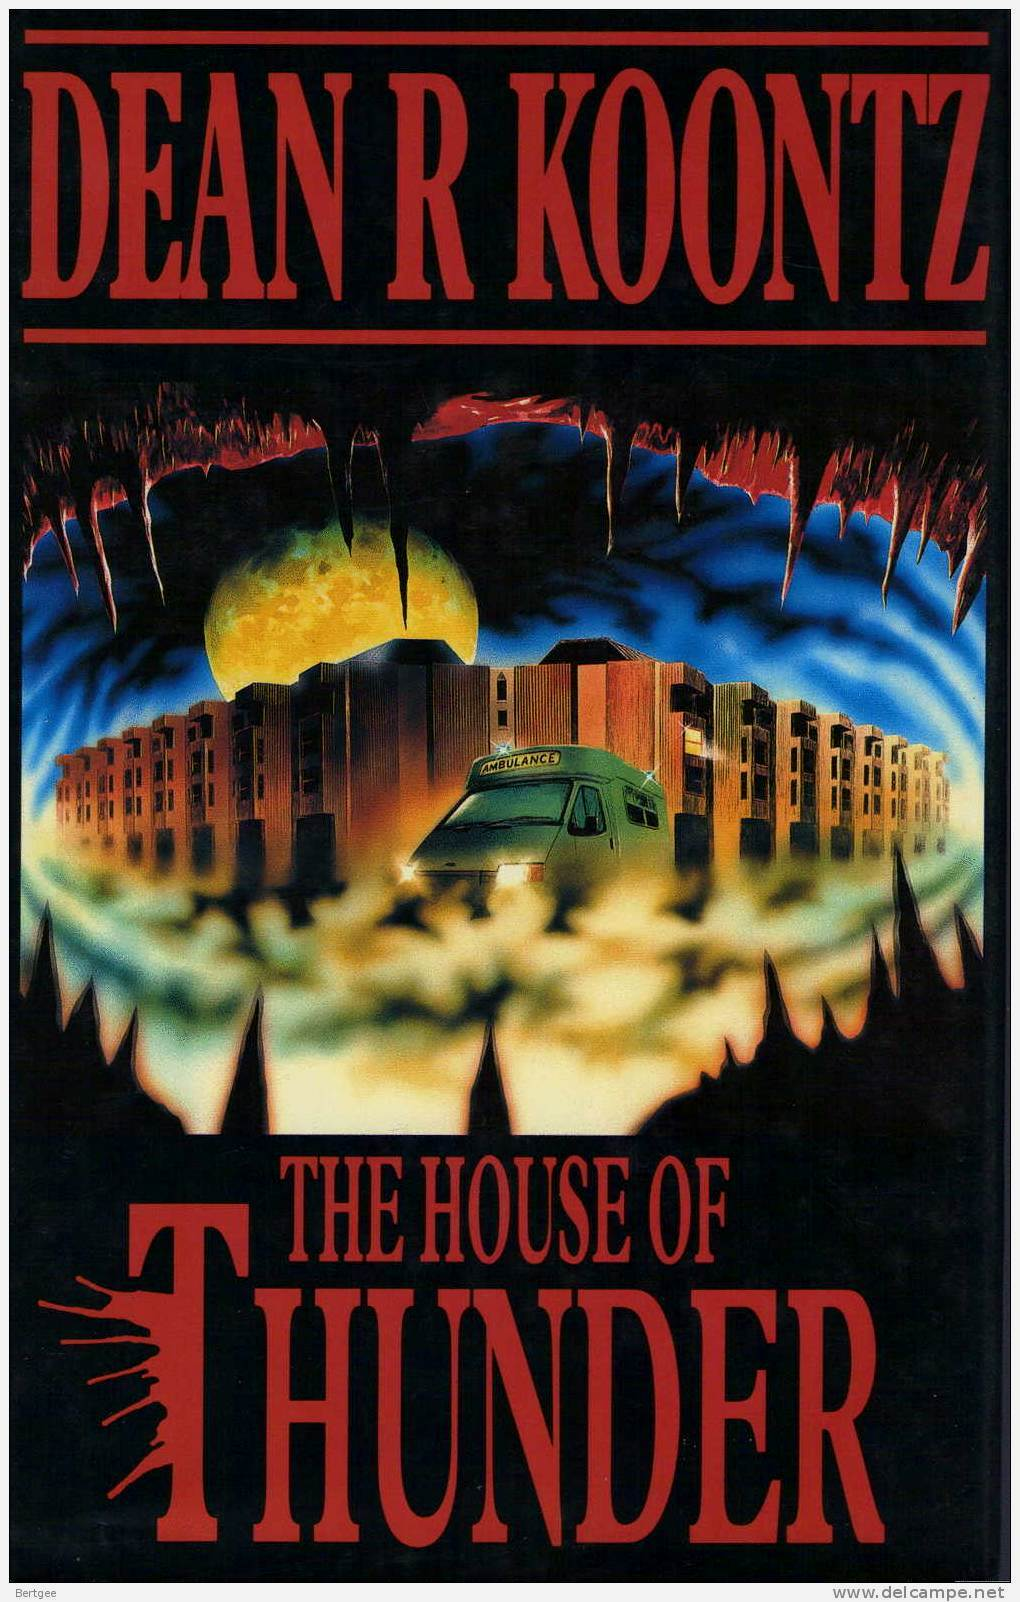 the house of thunder dean koontz cover